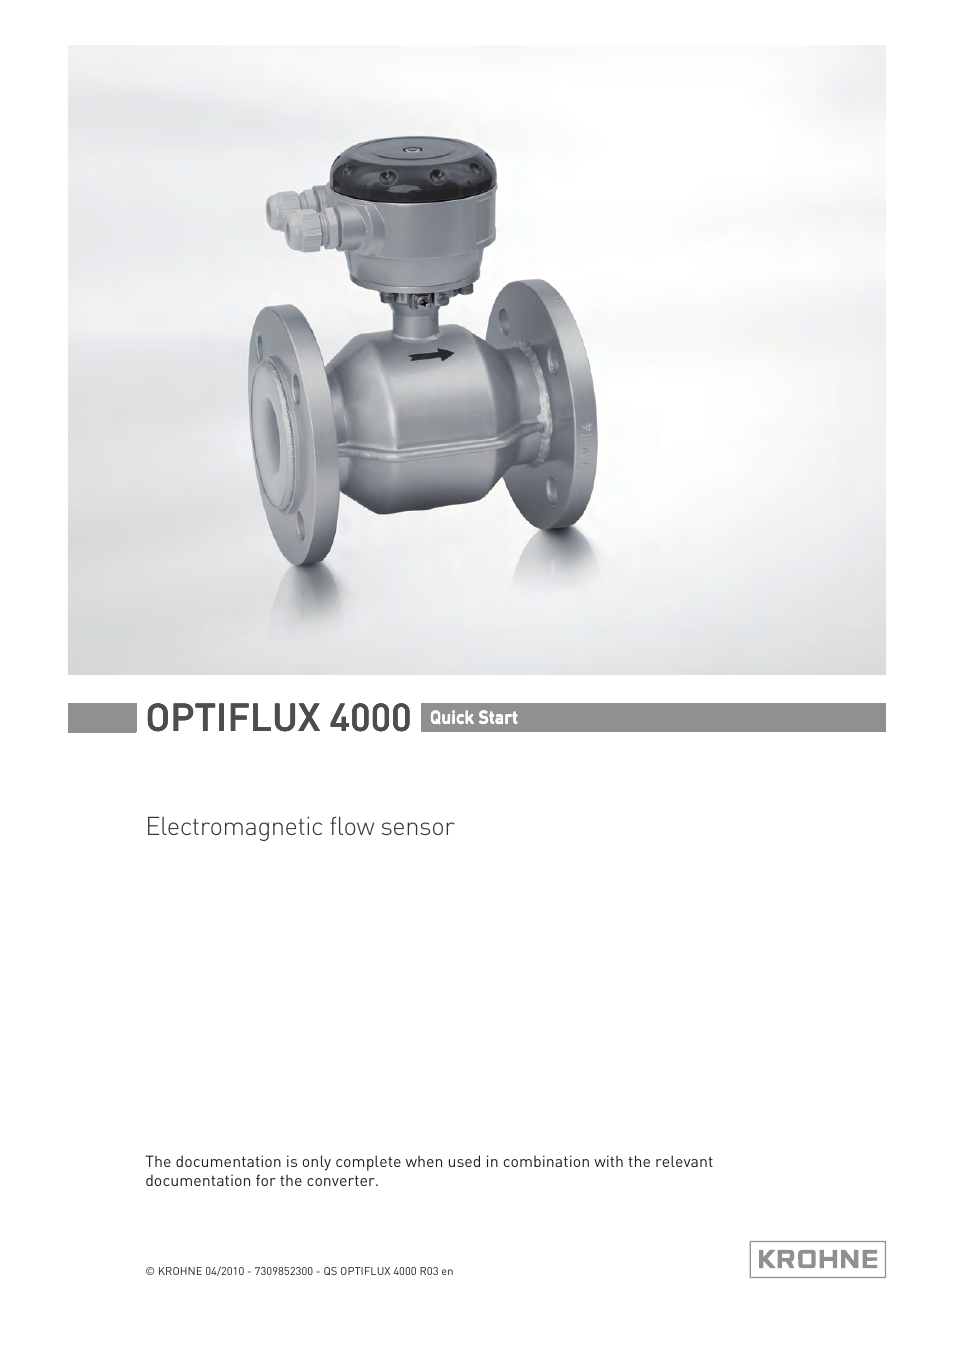 guide 13506 02 as well  in addition csm optiflex 1100 71d21abc51 in addition  in addition  moreover  likewise OPTIFLUX4040C 800x800 also  together with krohne optiflux 2000 4000 5000 6000 ifc 100 ex en page19 furthermore IFC300 800x800 01 moreover optiflux 4000 f. on krohne optiflux 4000 wiring diagram